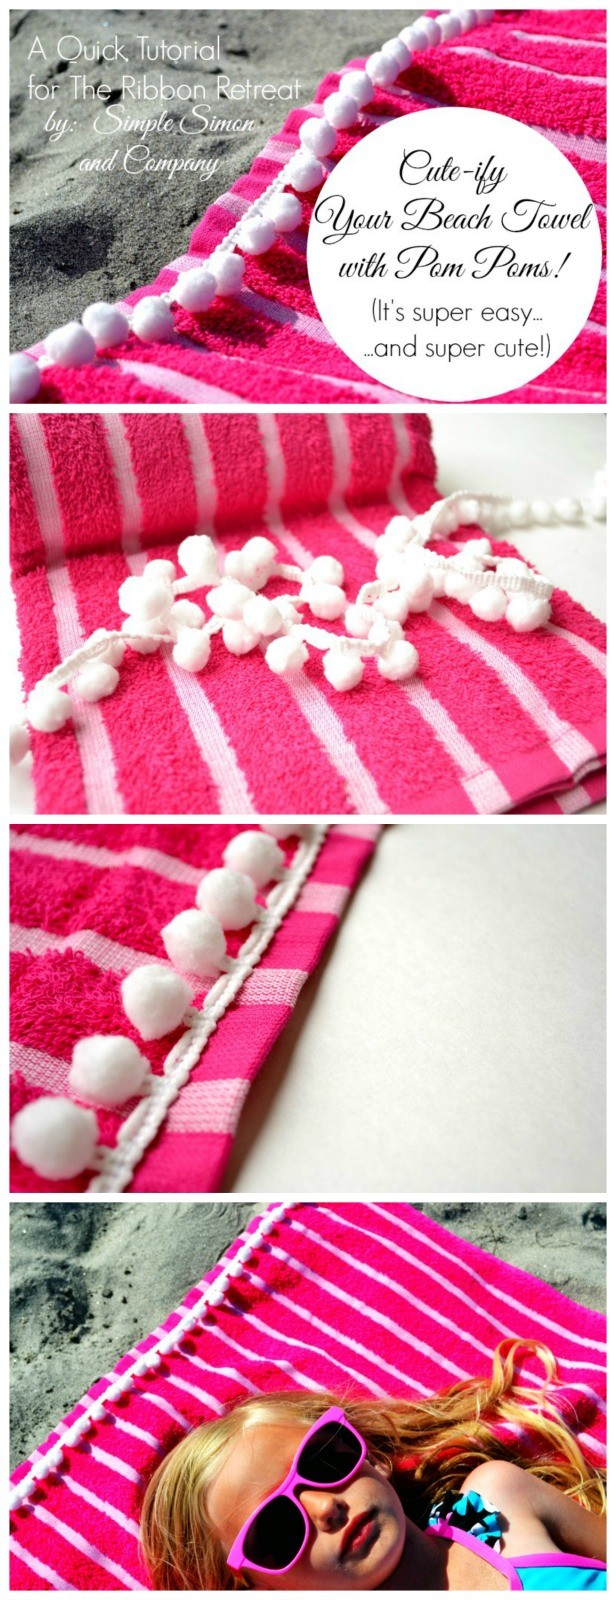 Beach Towel with Pom Poms - The Ribbon Retreat Blog